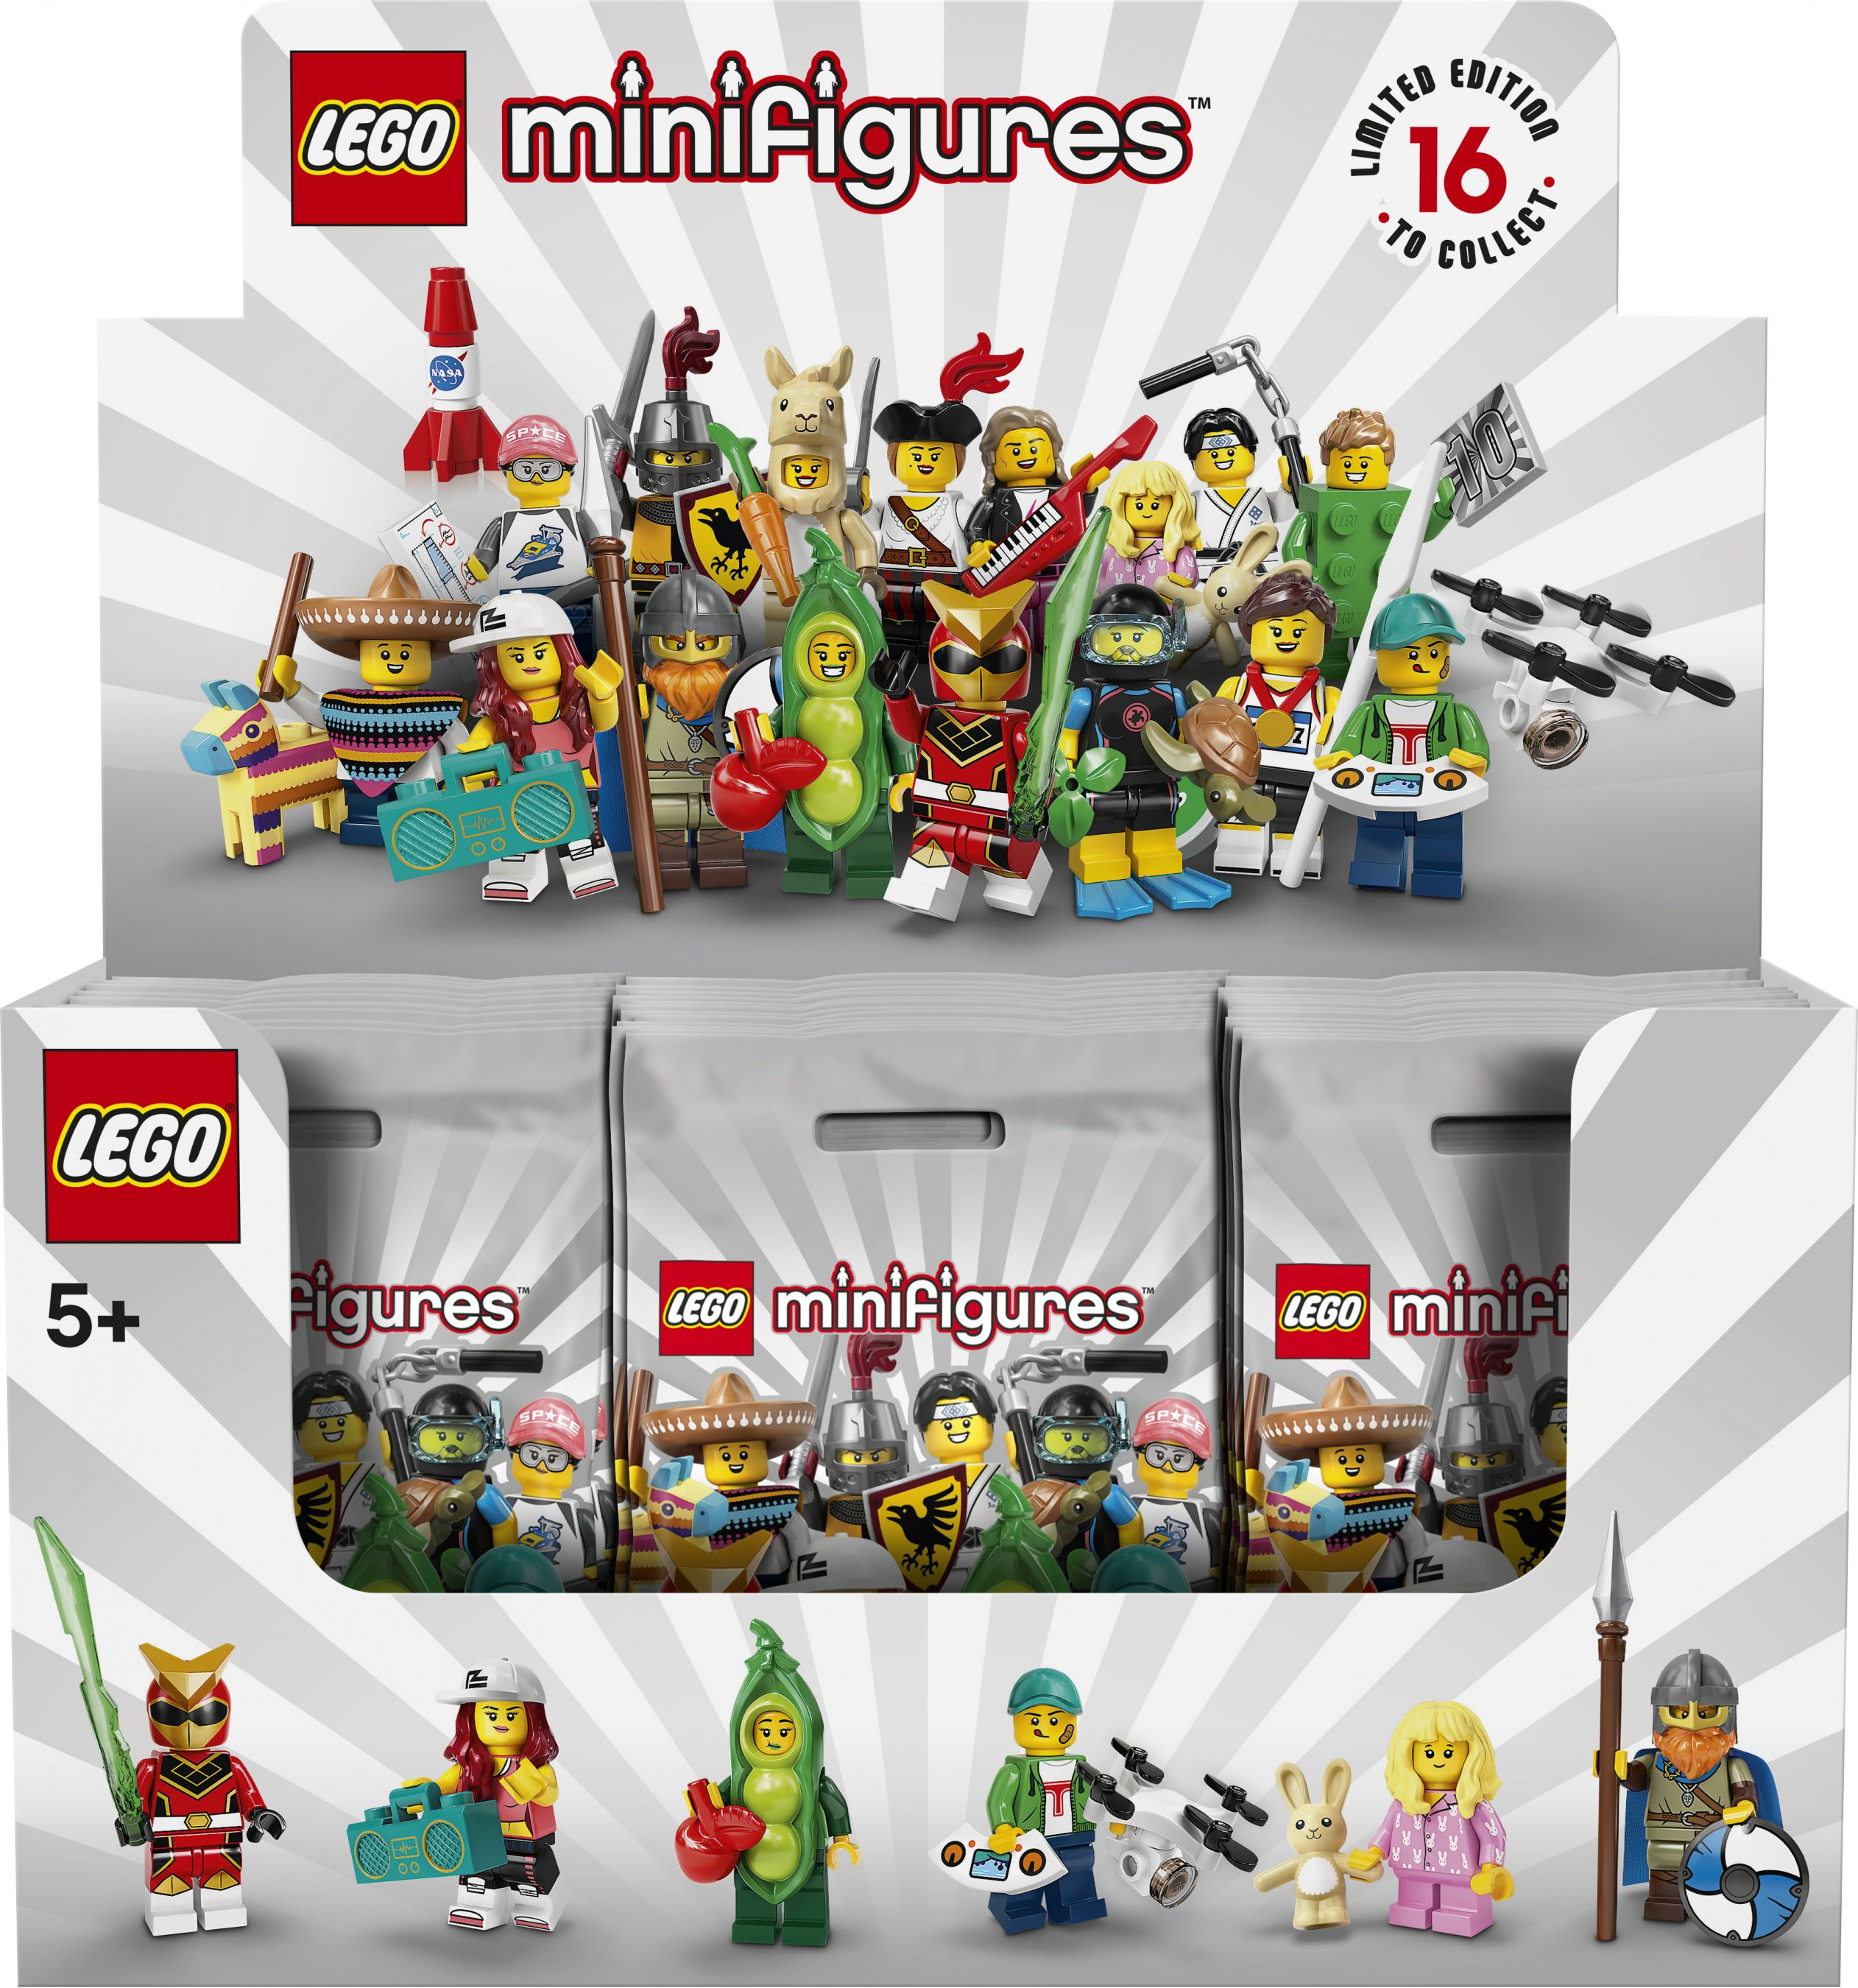 LEGO Collectable Minifigures 71027 LEGO® Minifiguren Serie 20 LEGO_71027_display_front.jpg